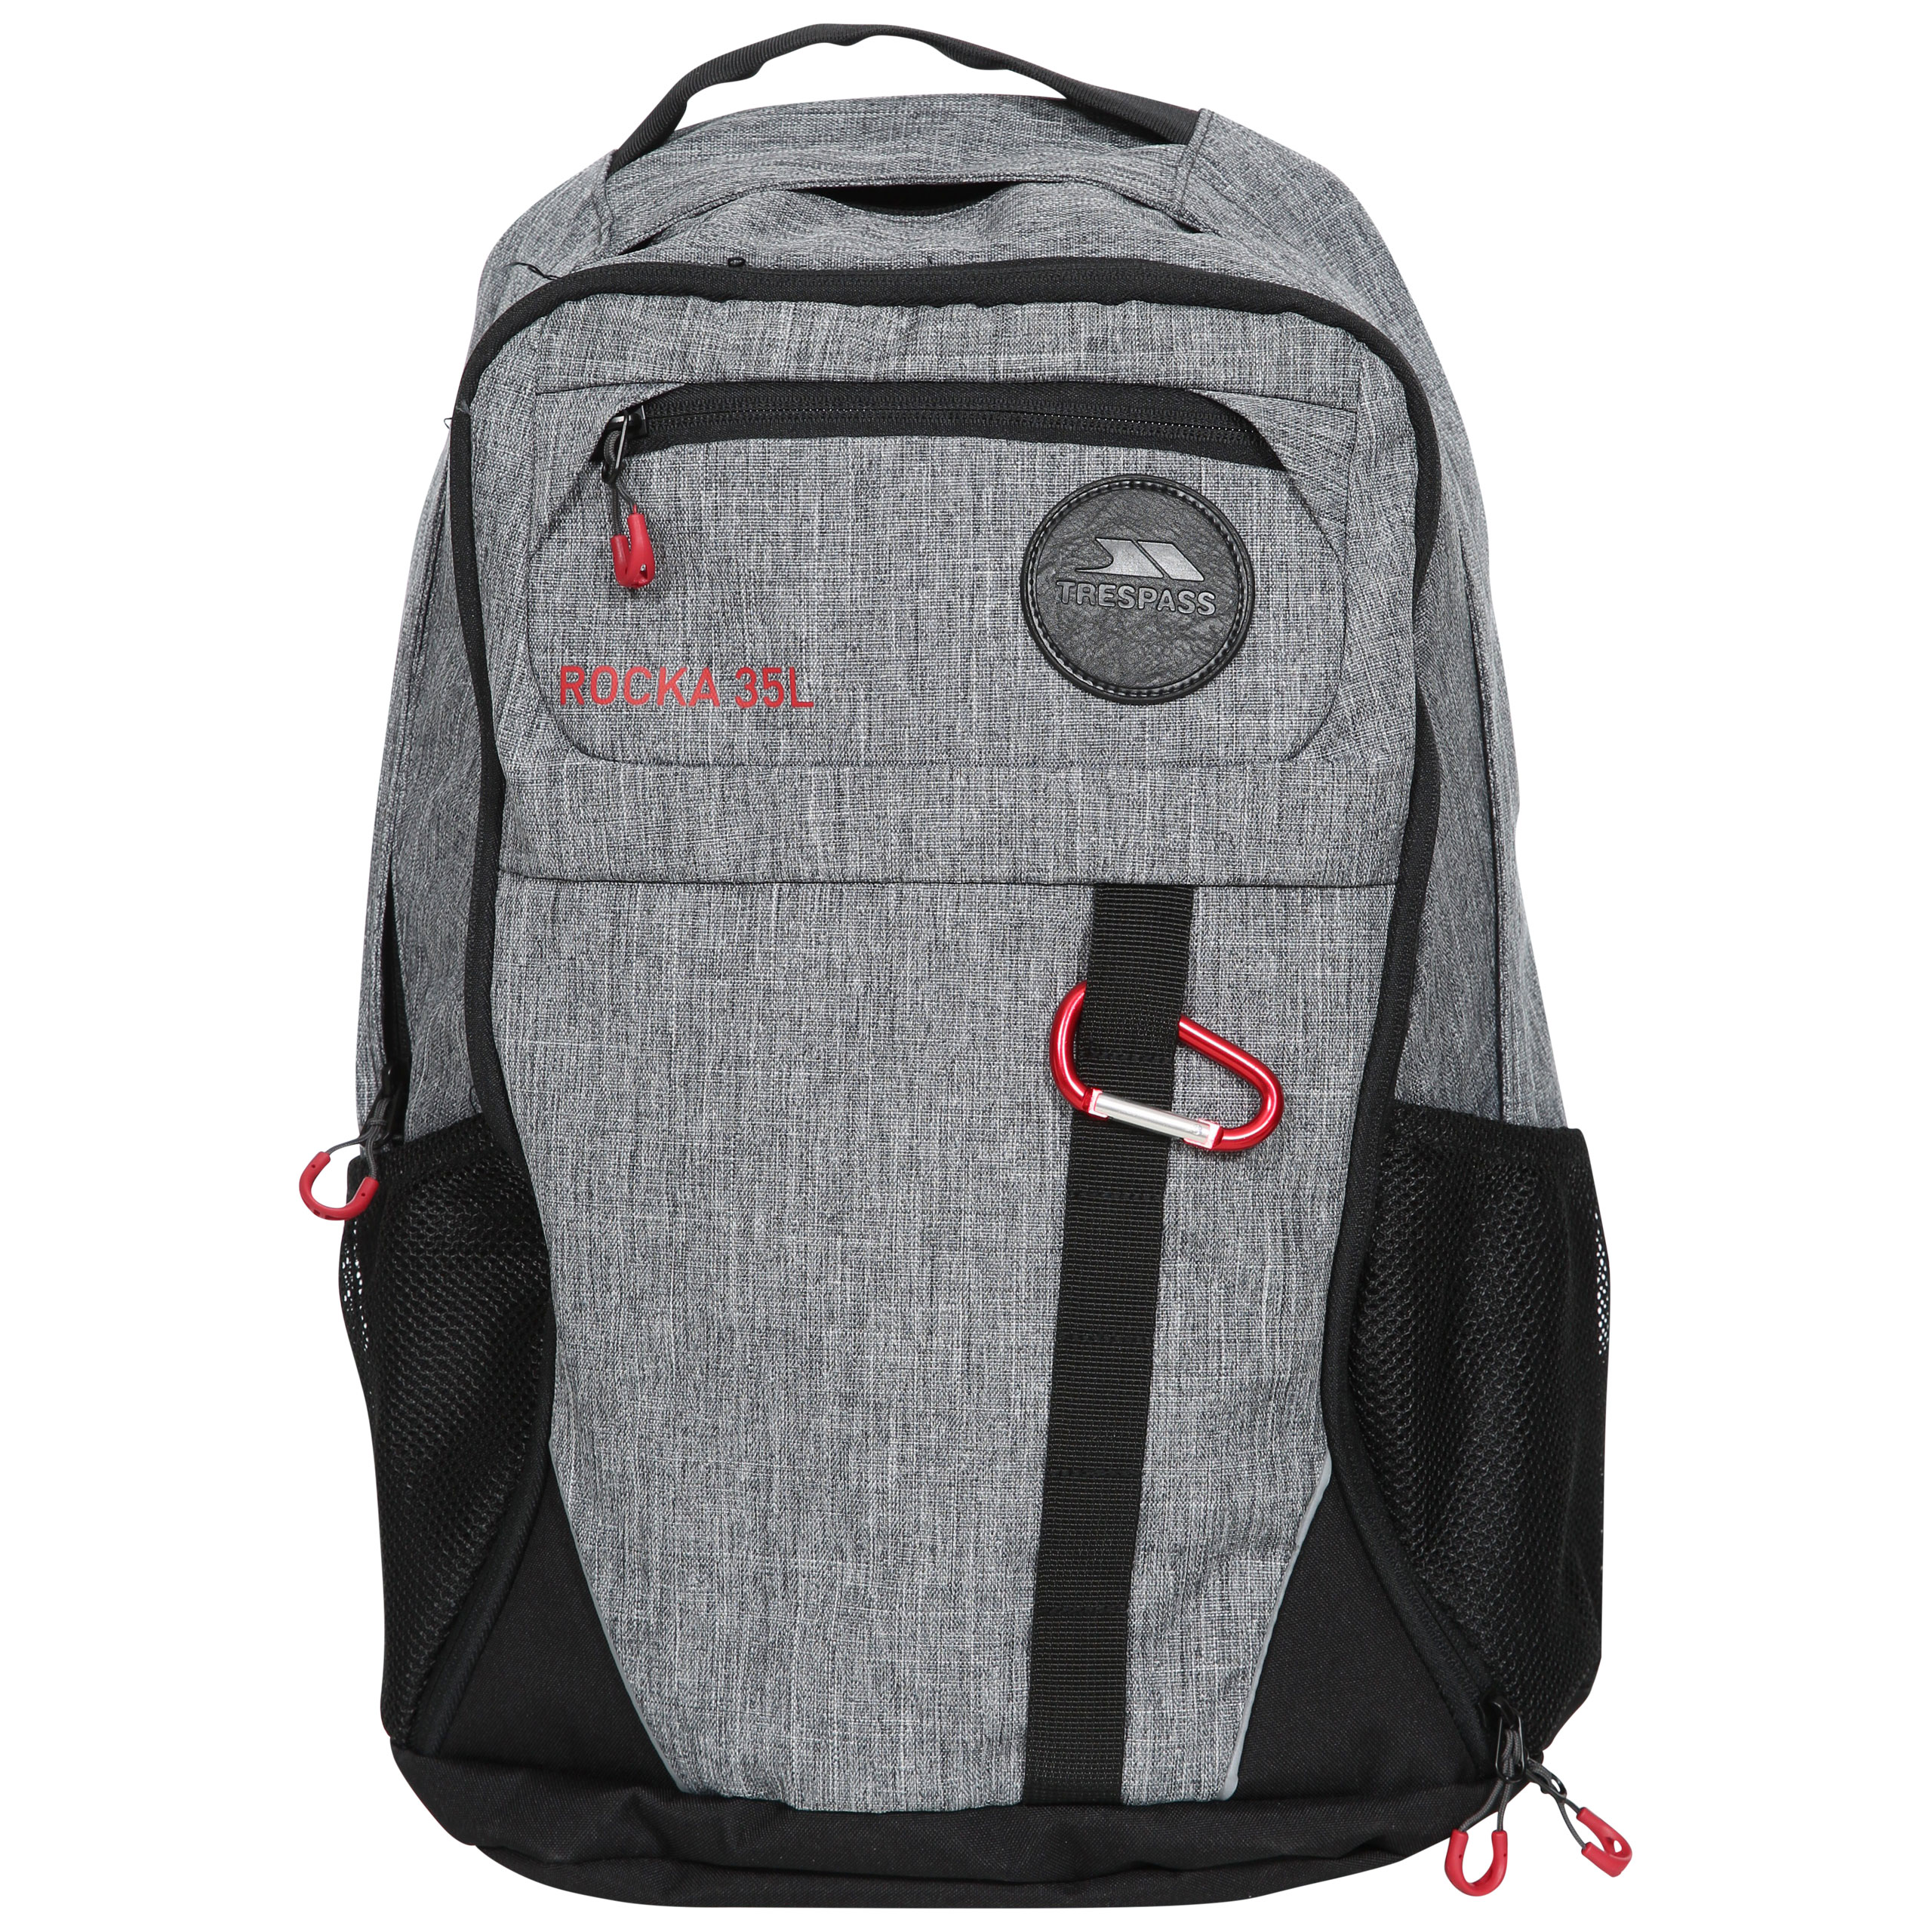 Rocka 35l Backpack